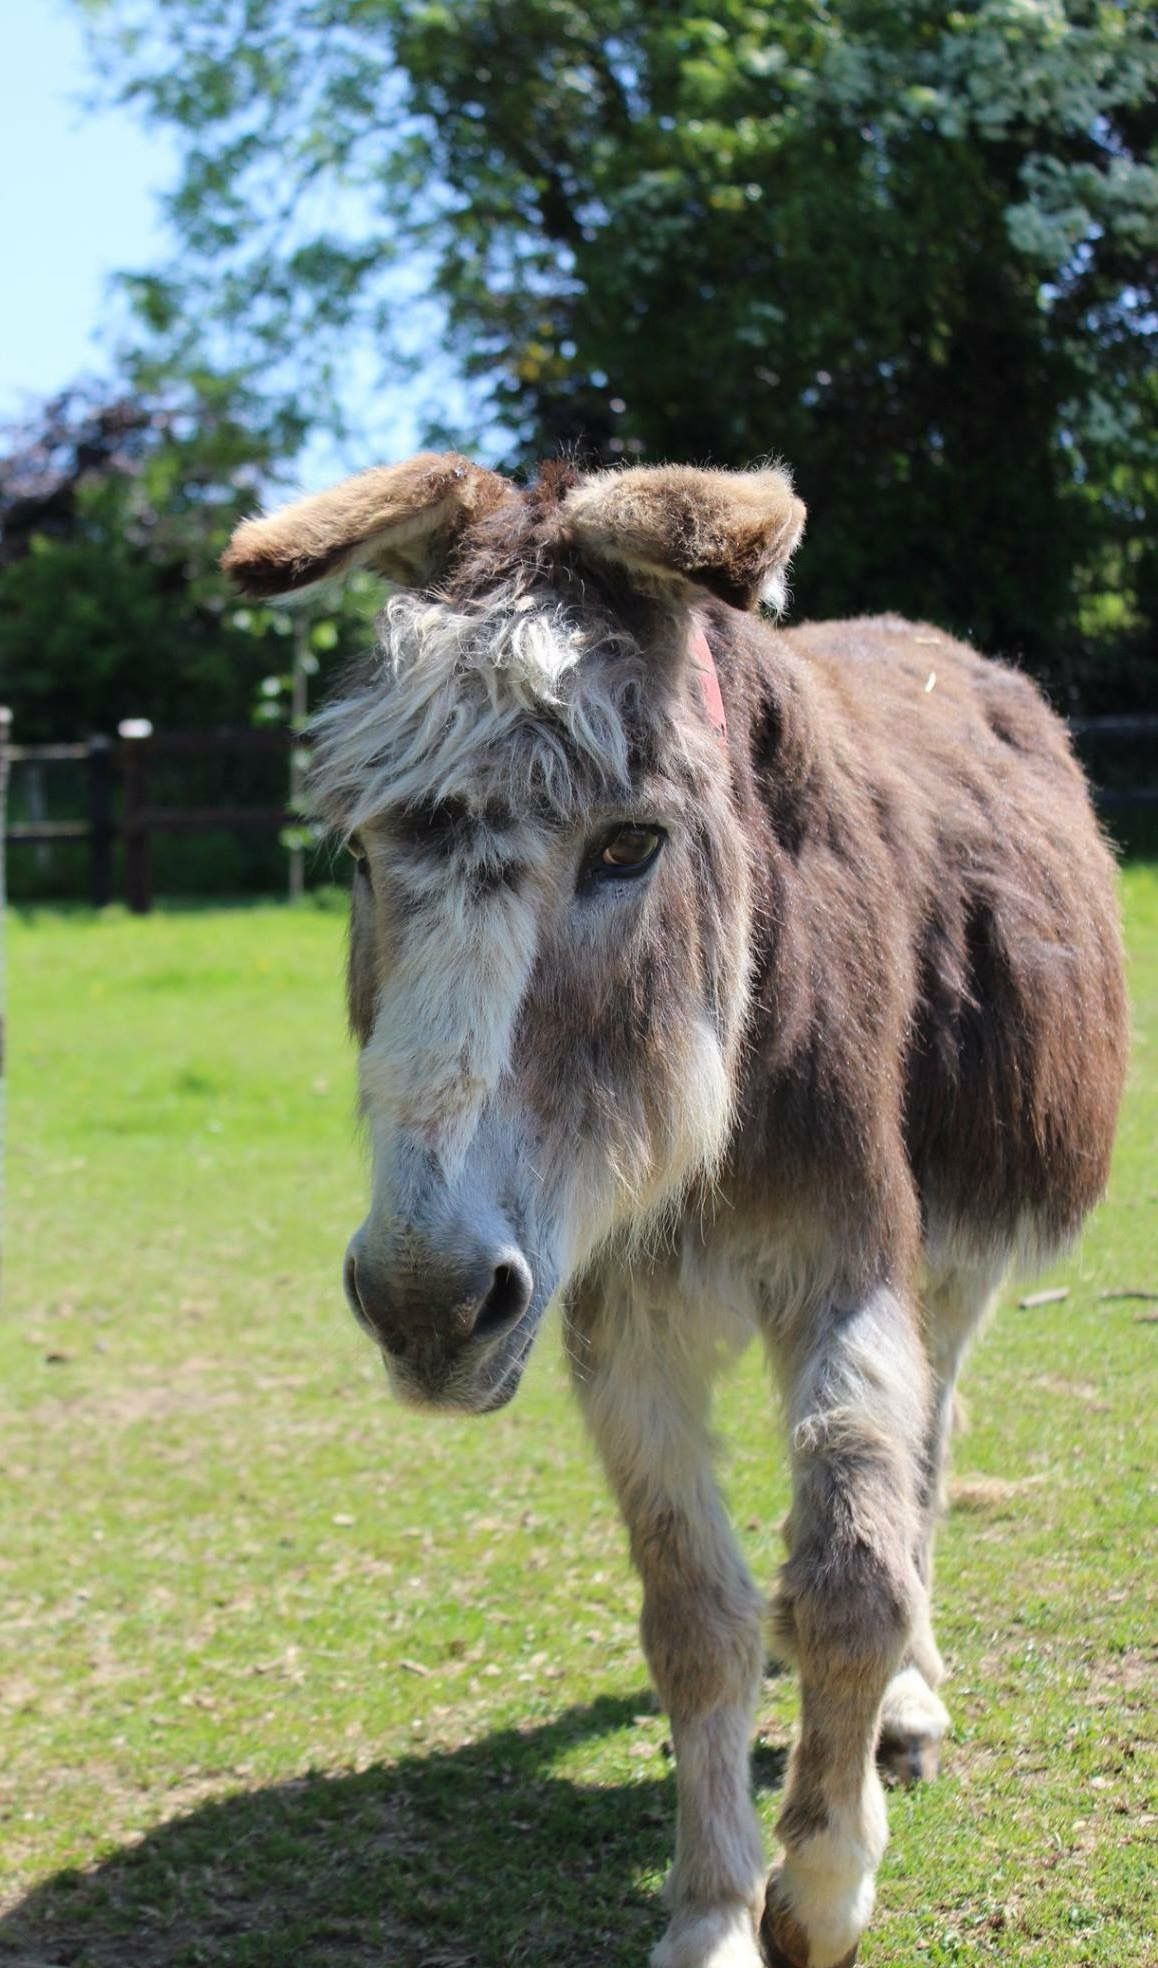 Lorcan from The Donkey Sanctuary Ireland ~ LORCAN is